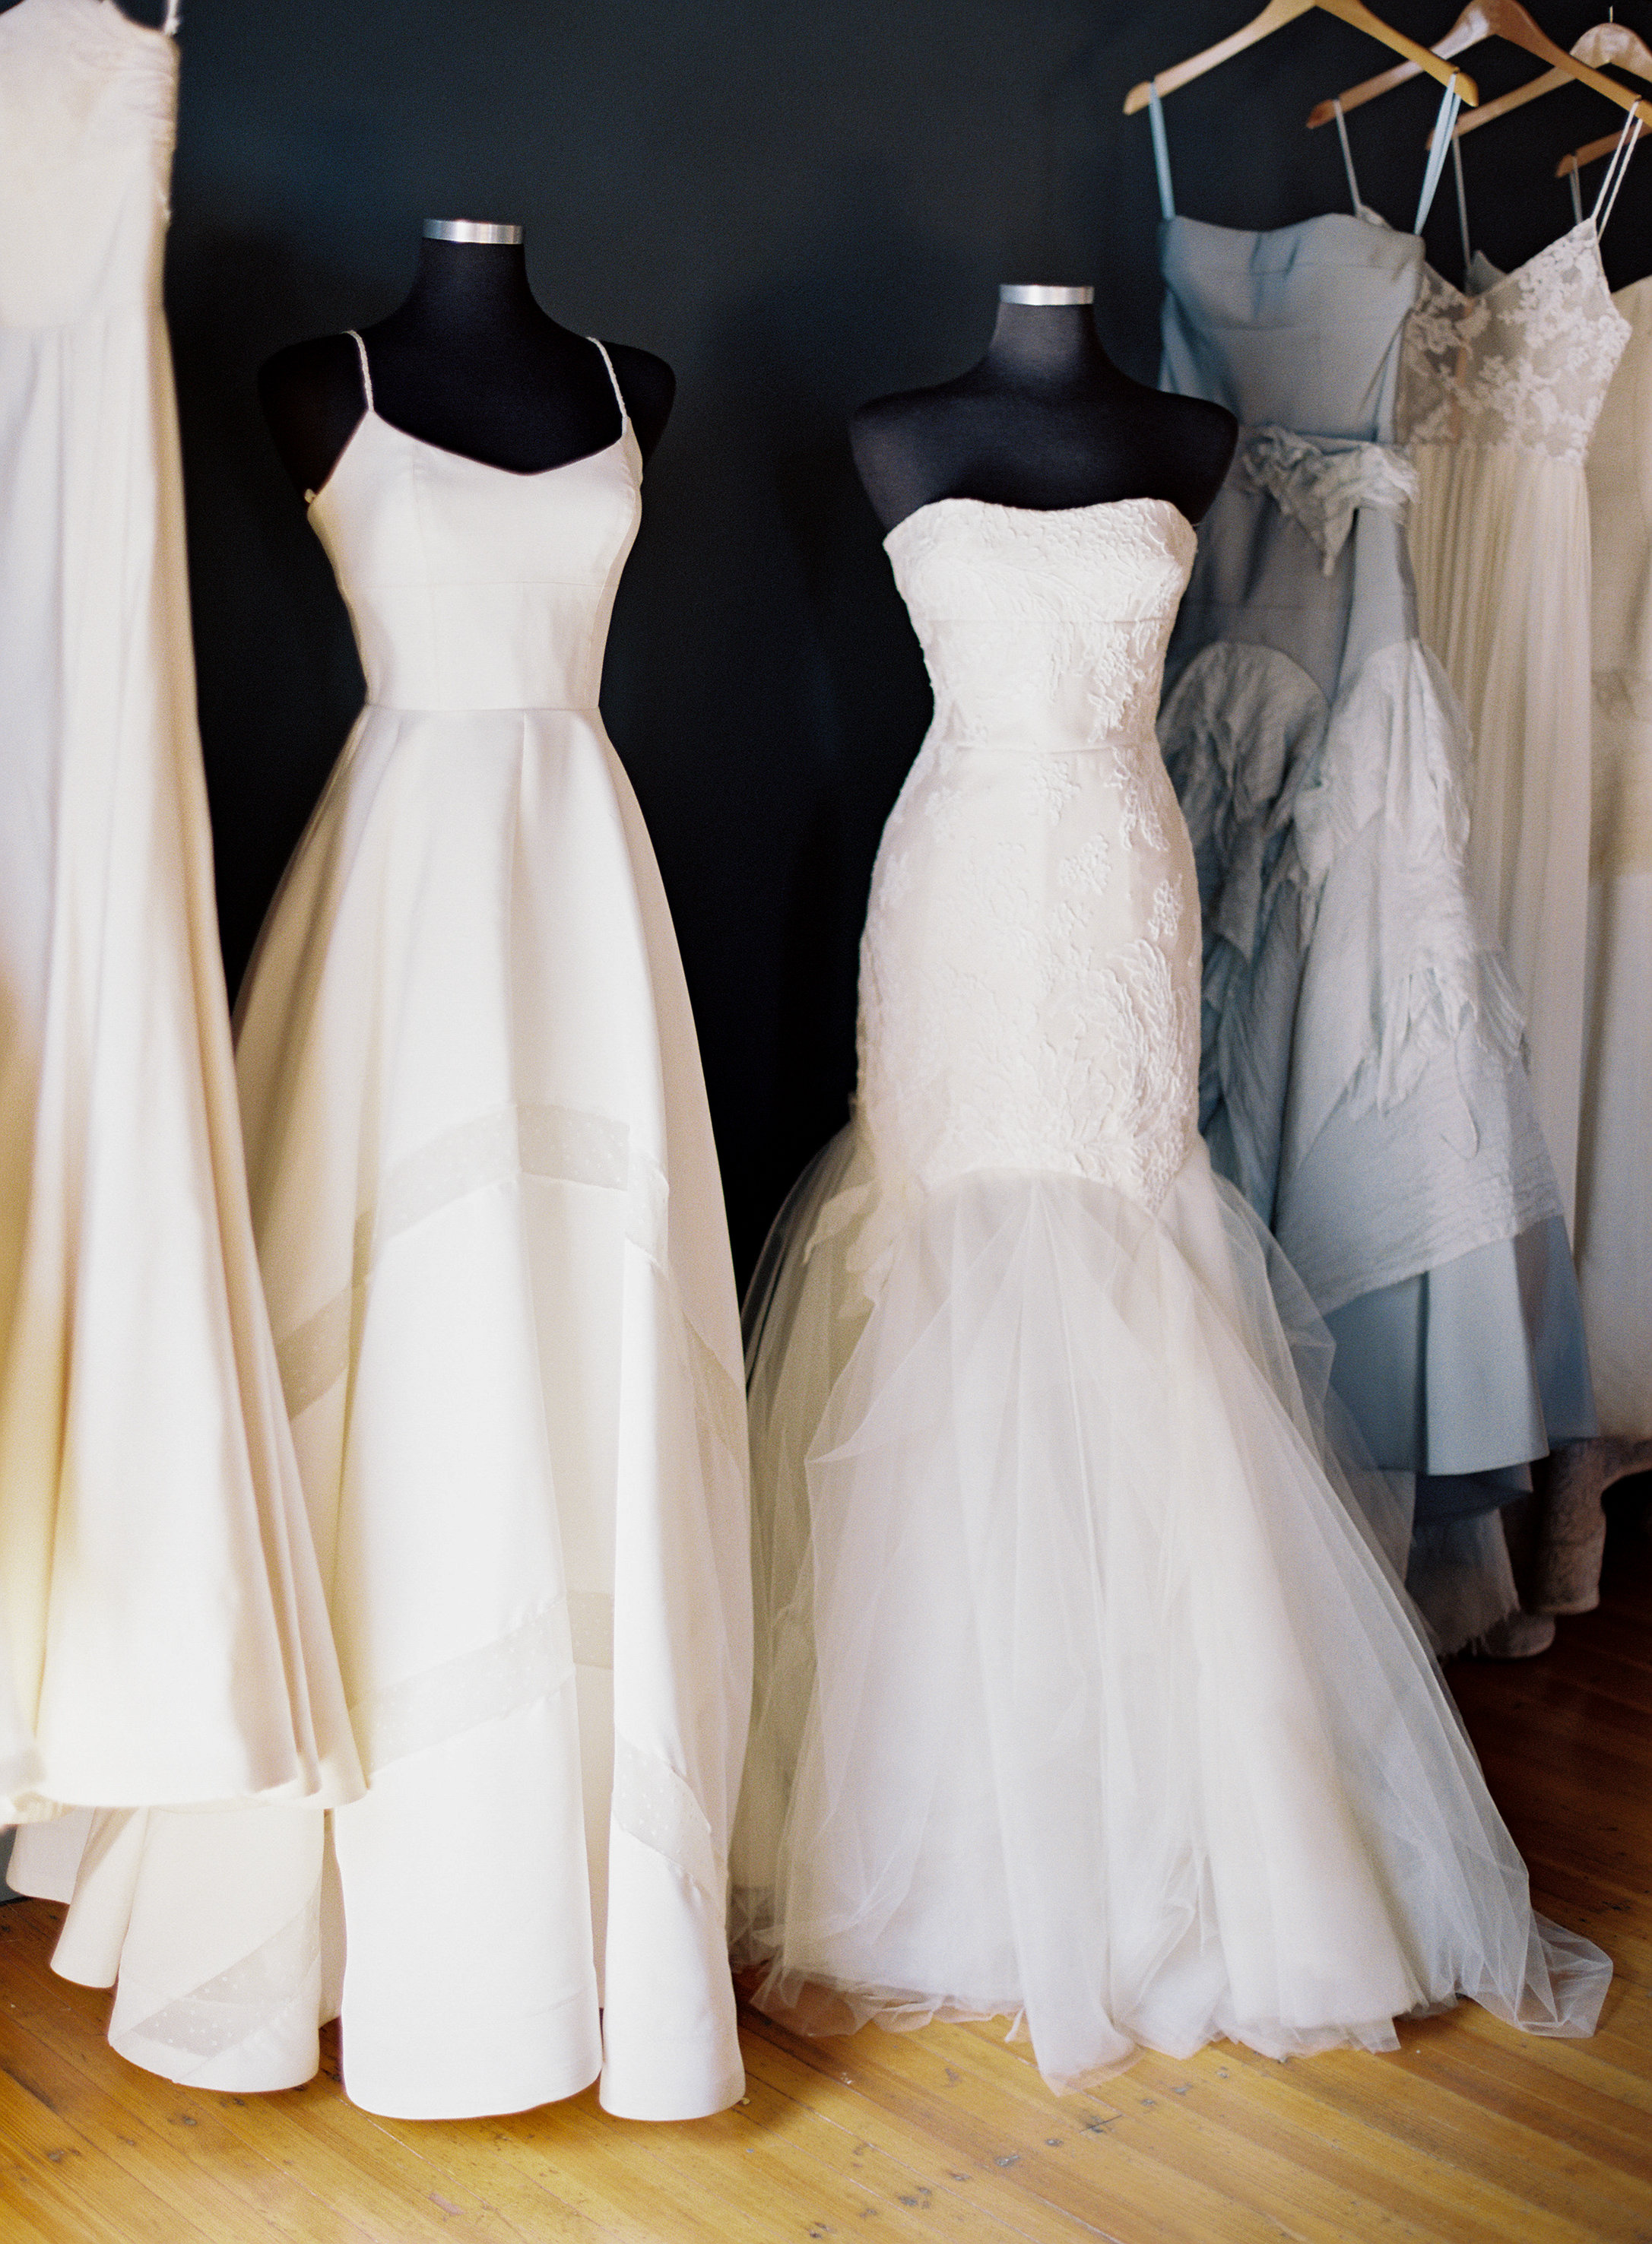 Wedding Dress Alterations.Your Most Frequently Asked Alterations Questions Answered By A